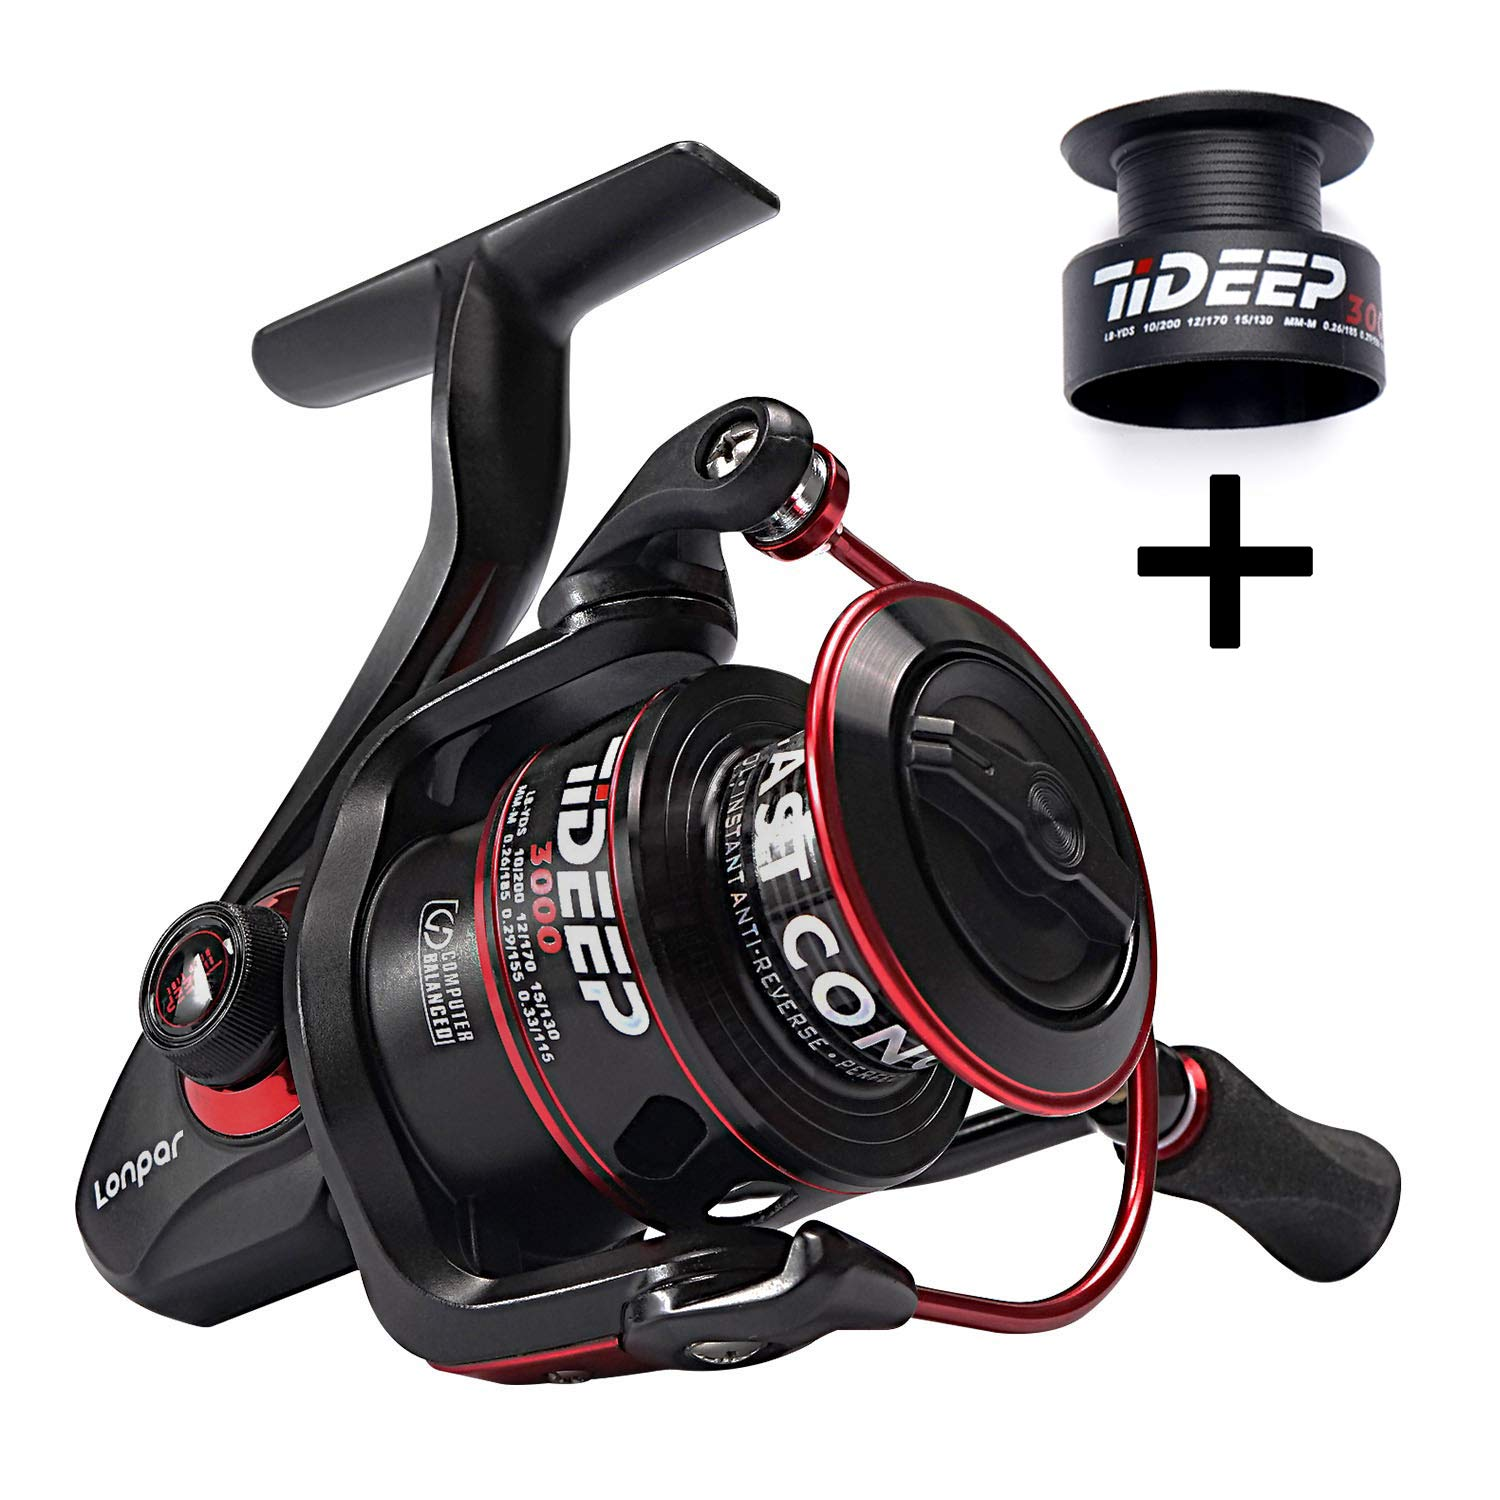 LONPAR Spinning Fishing Reel 7 1 8 1 9 1BB Lightweight Powerful Drag Two Spools Included Selectable Anti-Reverse Right Left Handle Fishing Reel for Saltwater or Freshwater